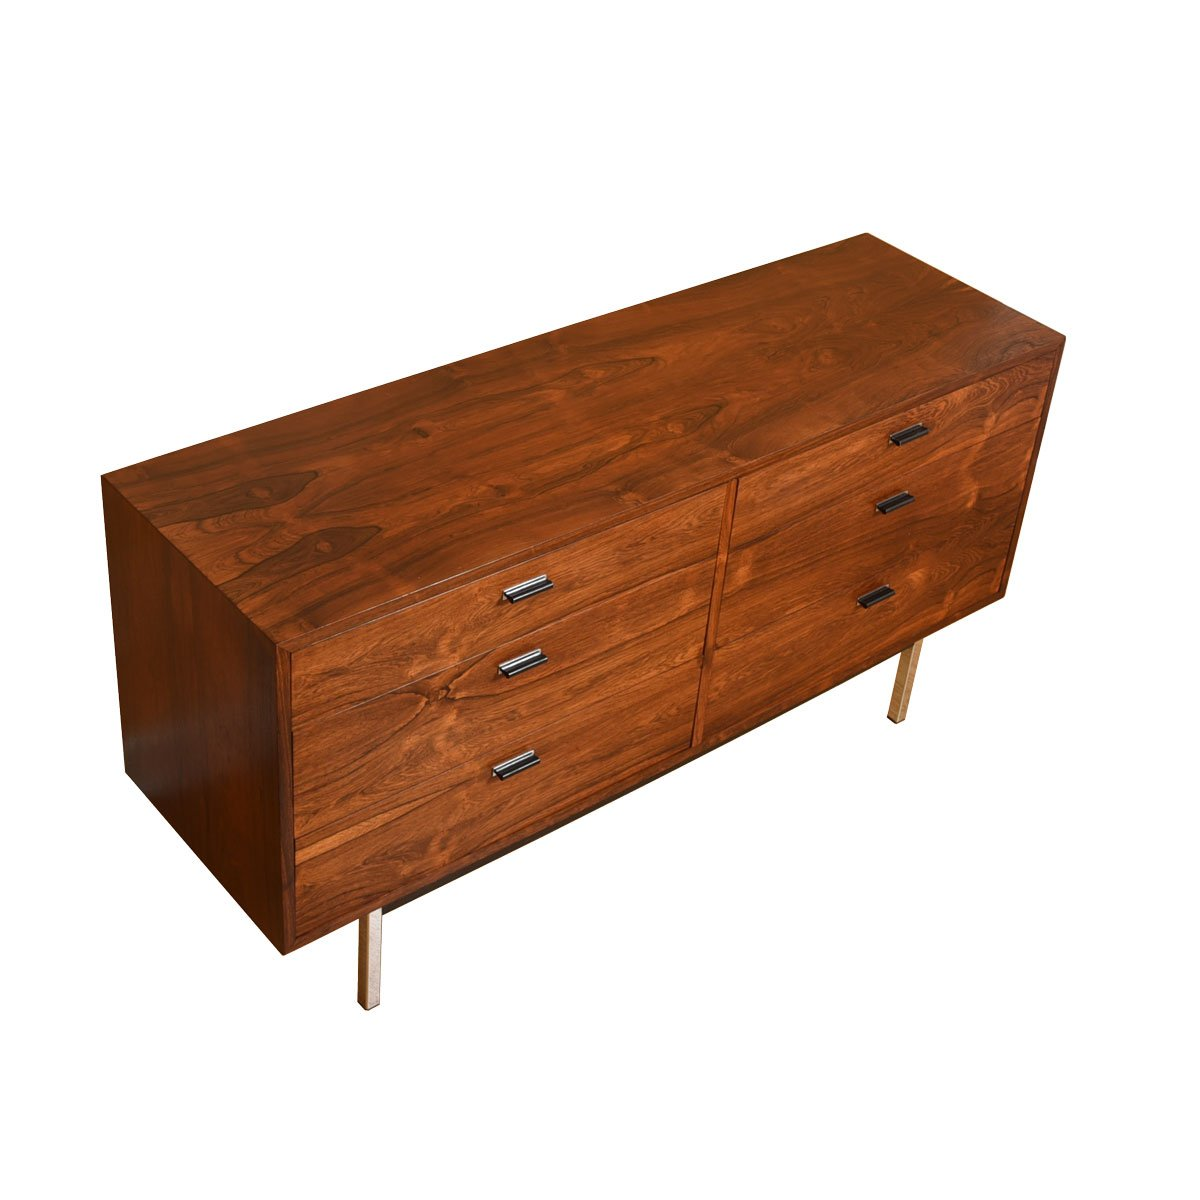 Rosewood 6 Drawer Dresser w/ Chrome Legs